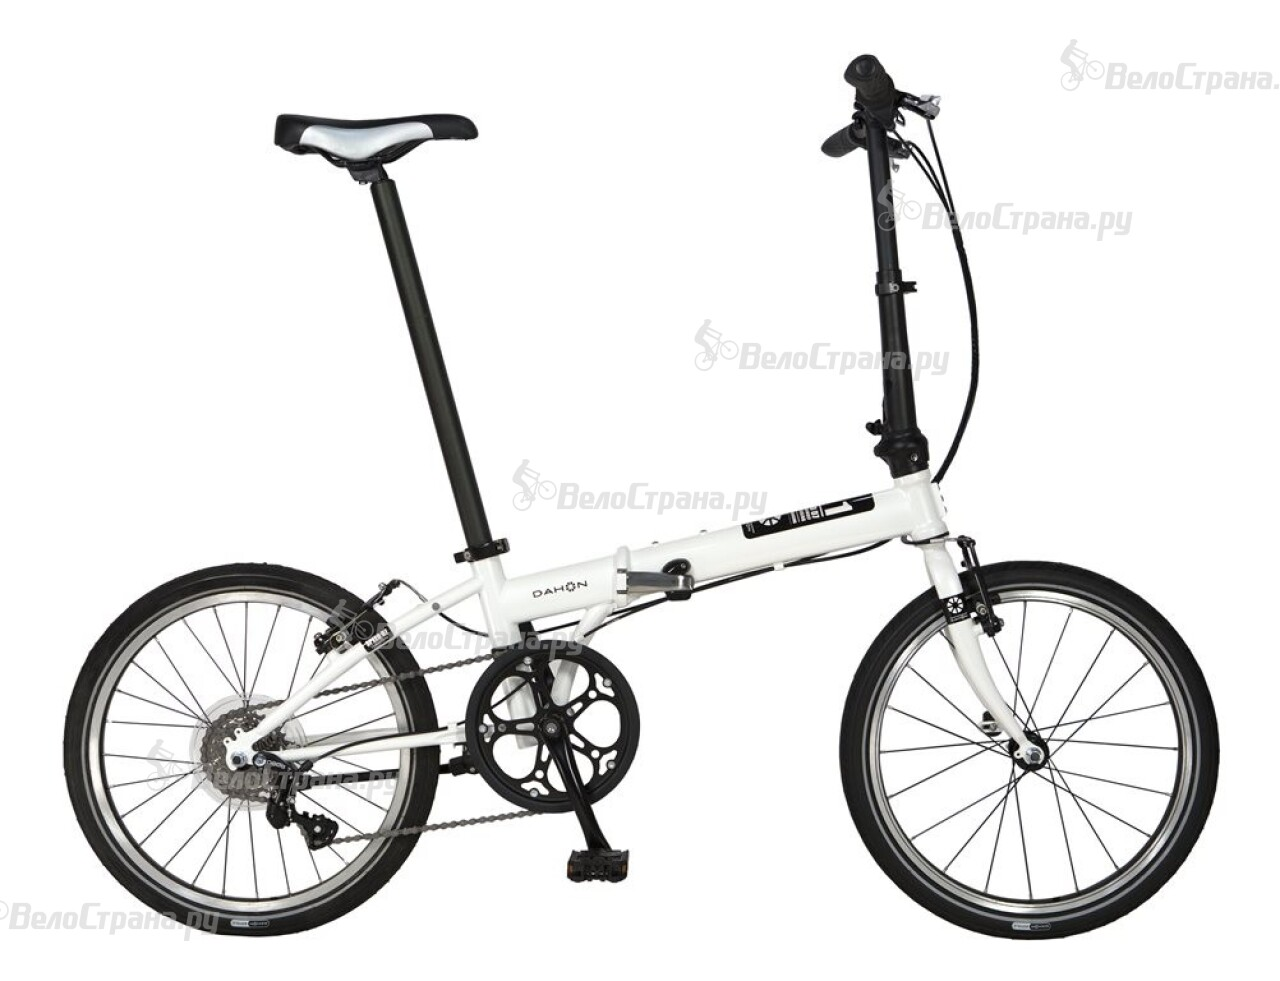 Велосипед Dahon Speed D7 (2014)